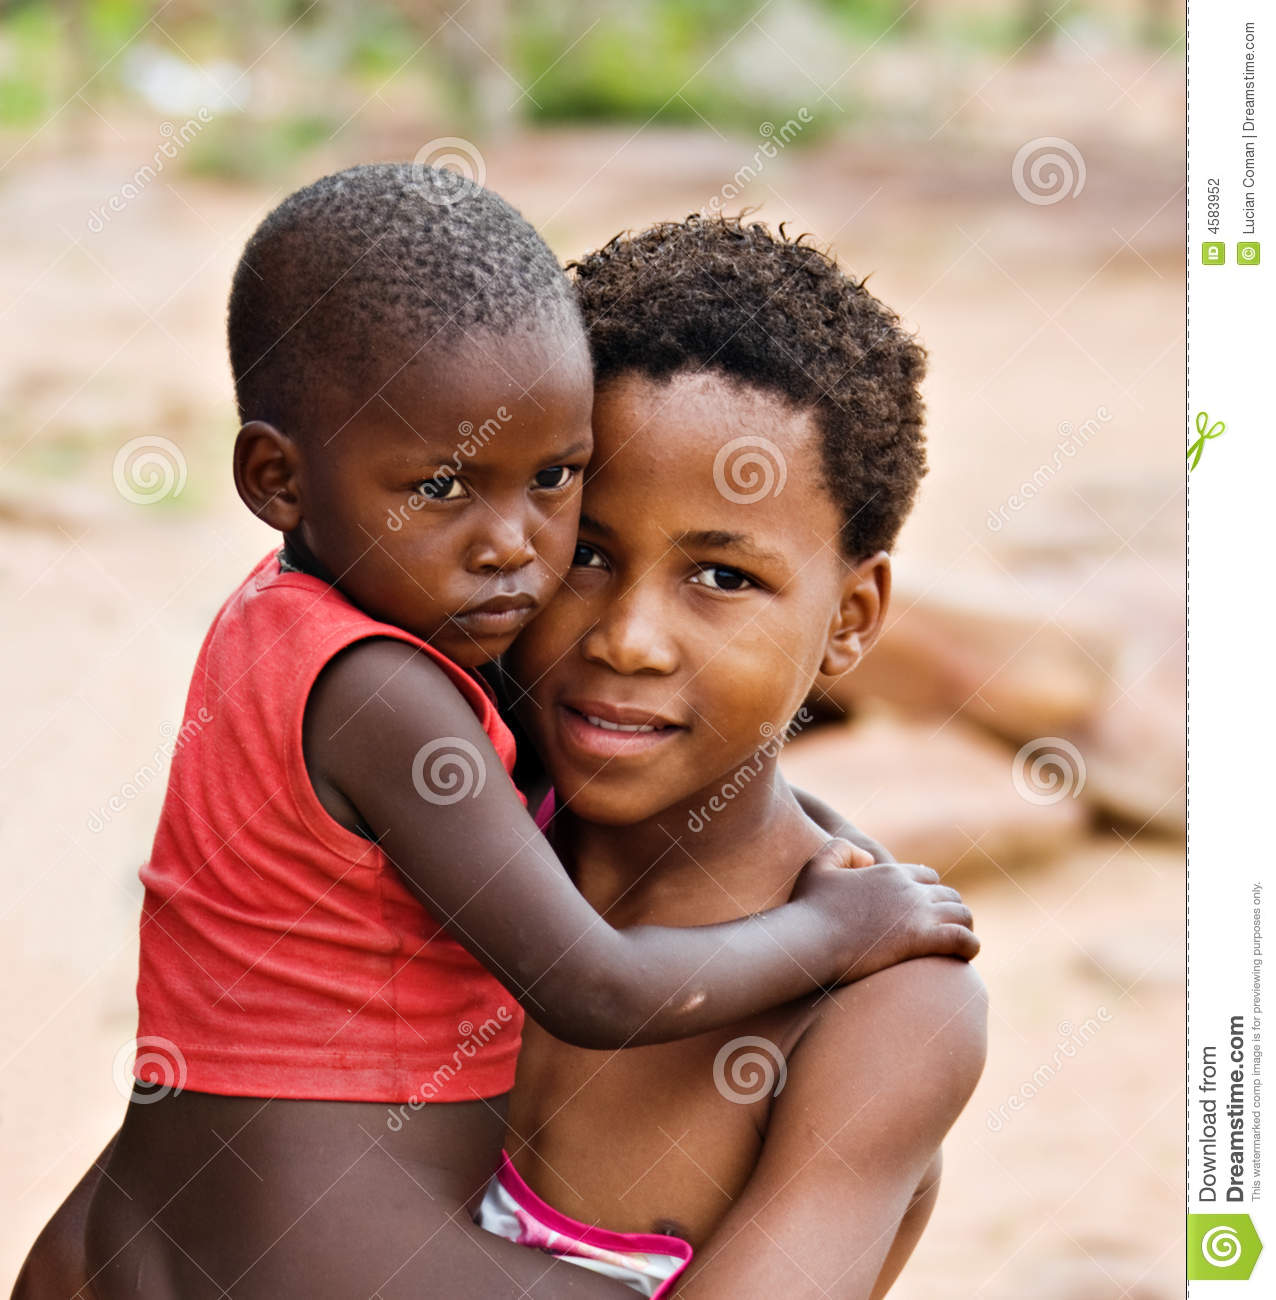 African children brother and sister, social issues, poverty, village ...